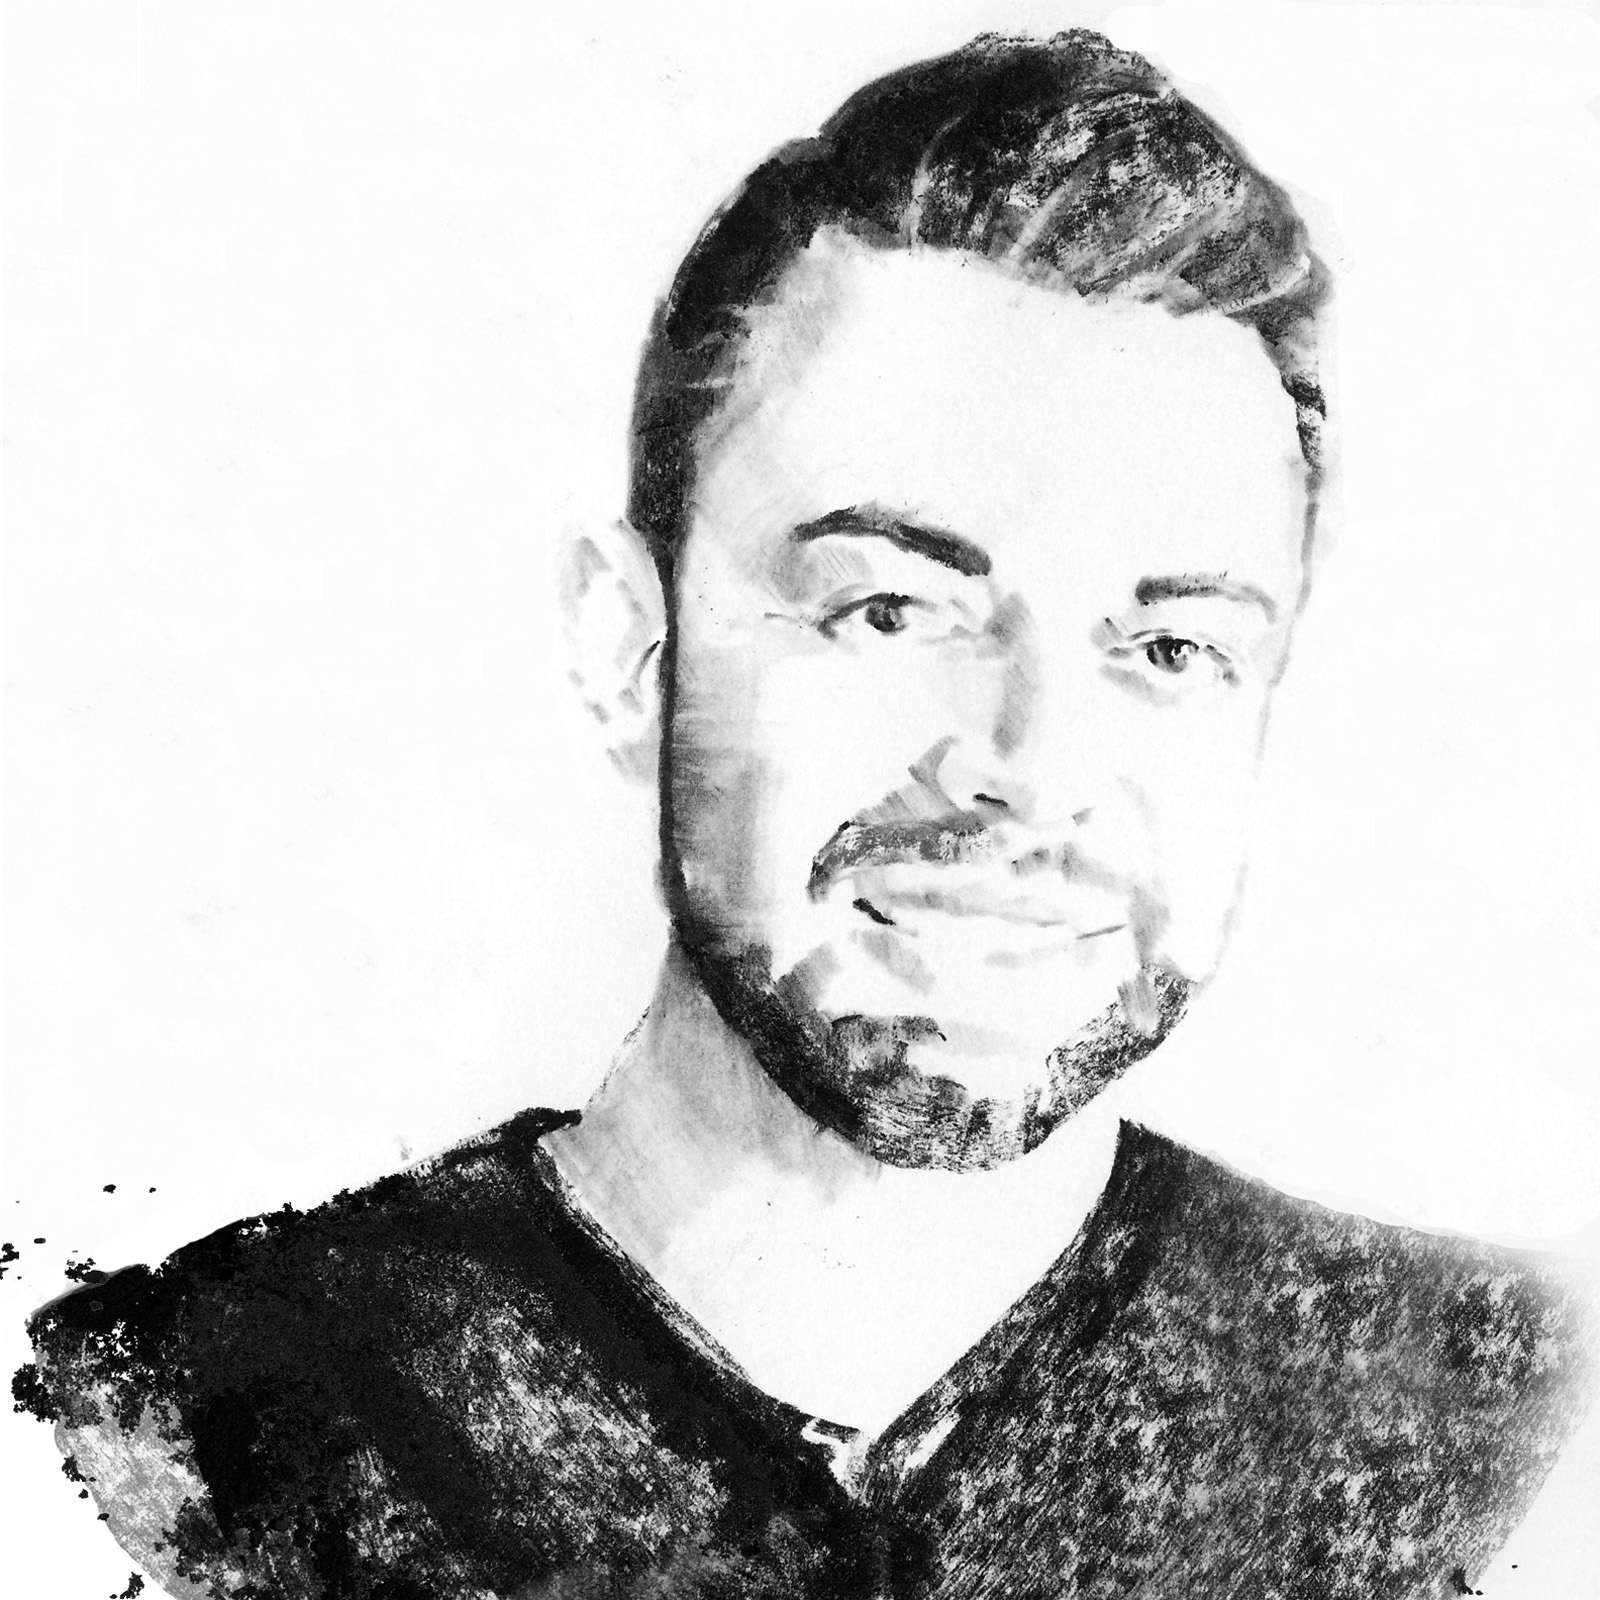 Copy of Joel in Charcoal _Print.jpg